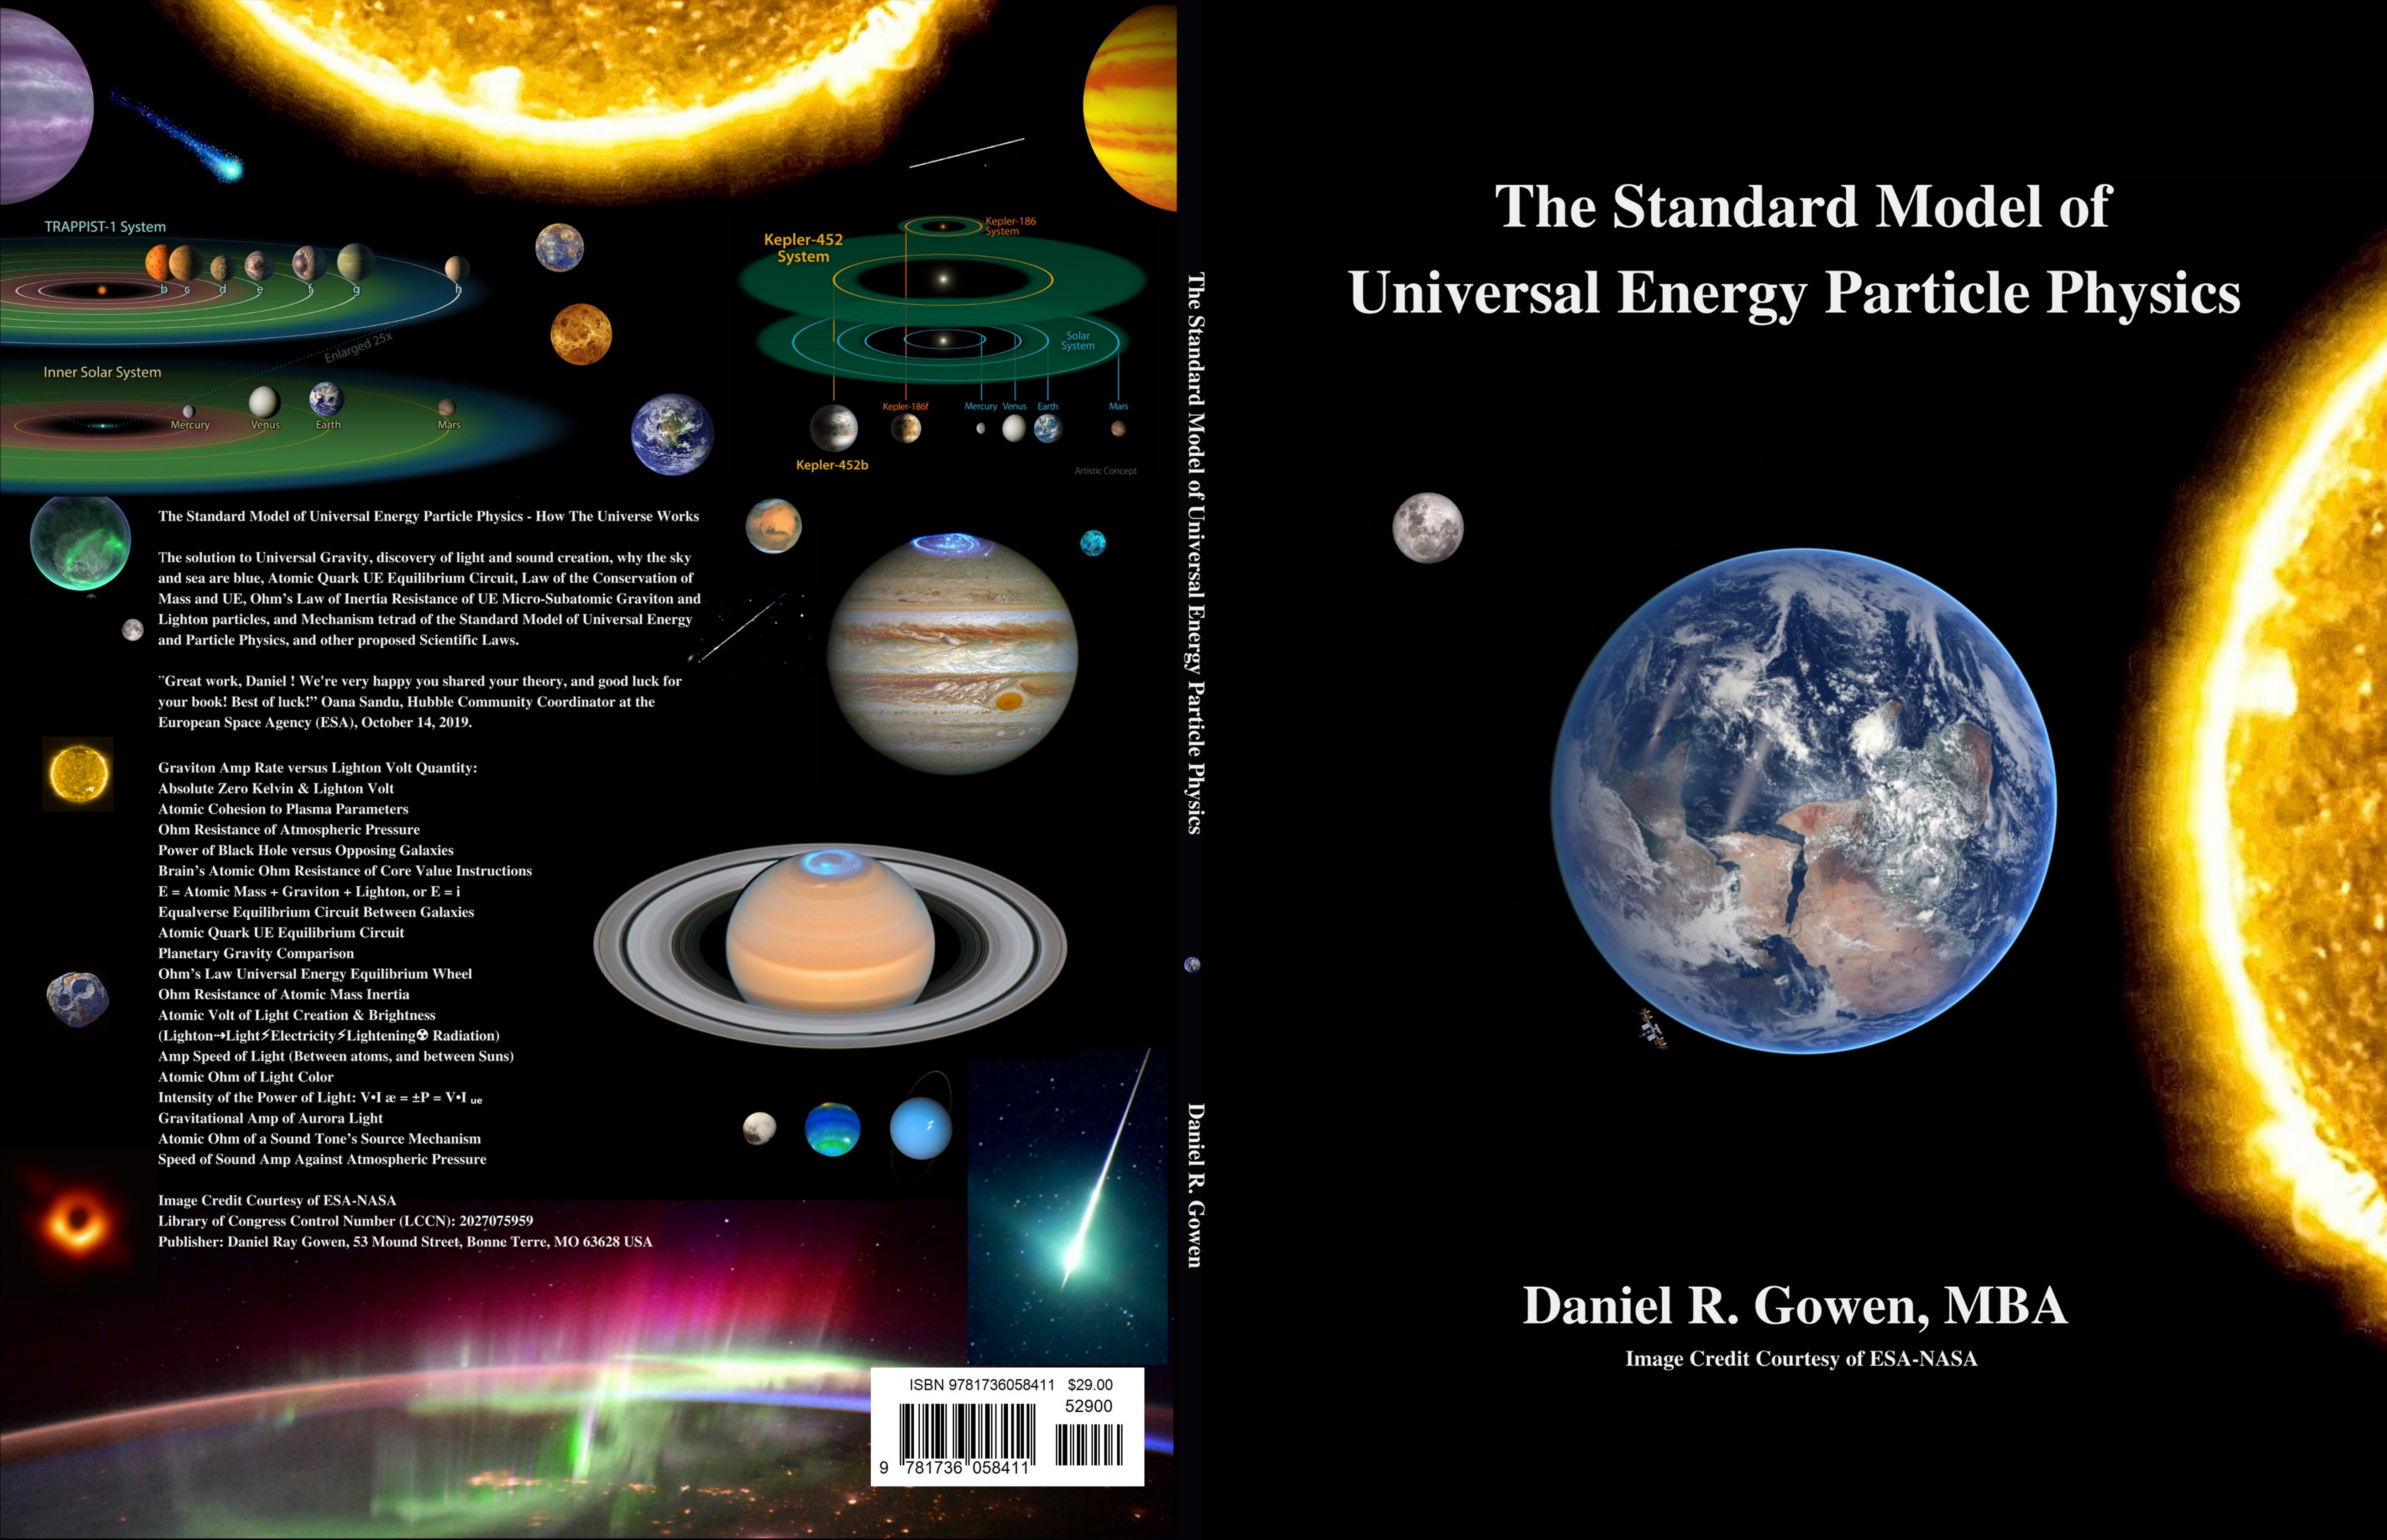 Lighton and Lightan Particles Are the Interconnection of Universal Energy: The Interconnectivity of Micro-Subatomic Electromagnetism to Universal Gravity cover image